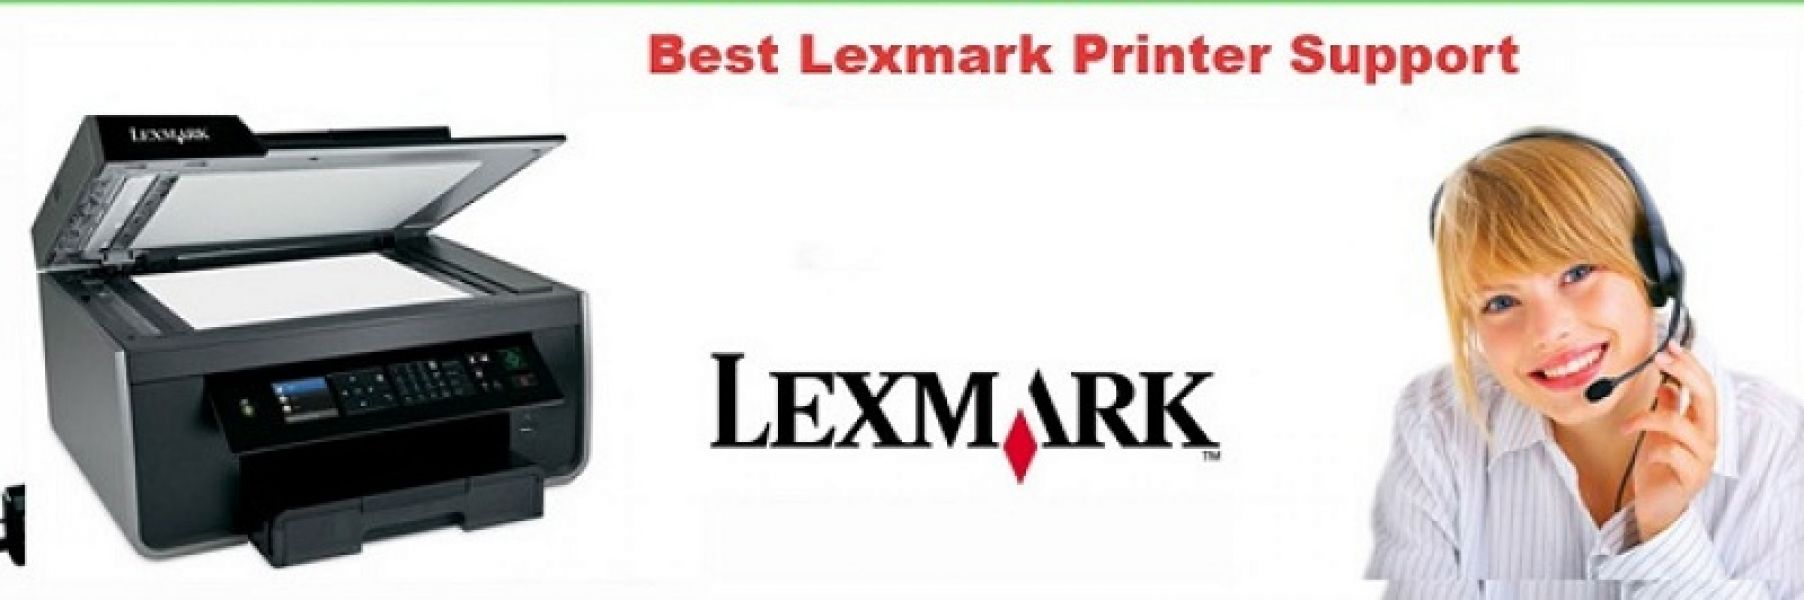 Lexmark Customer Support Phone Number